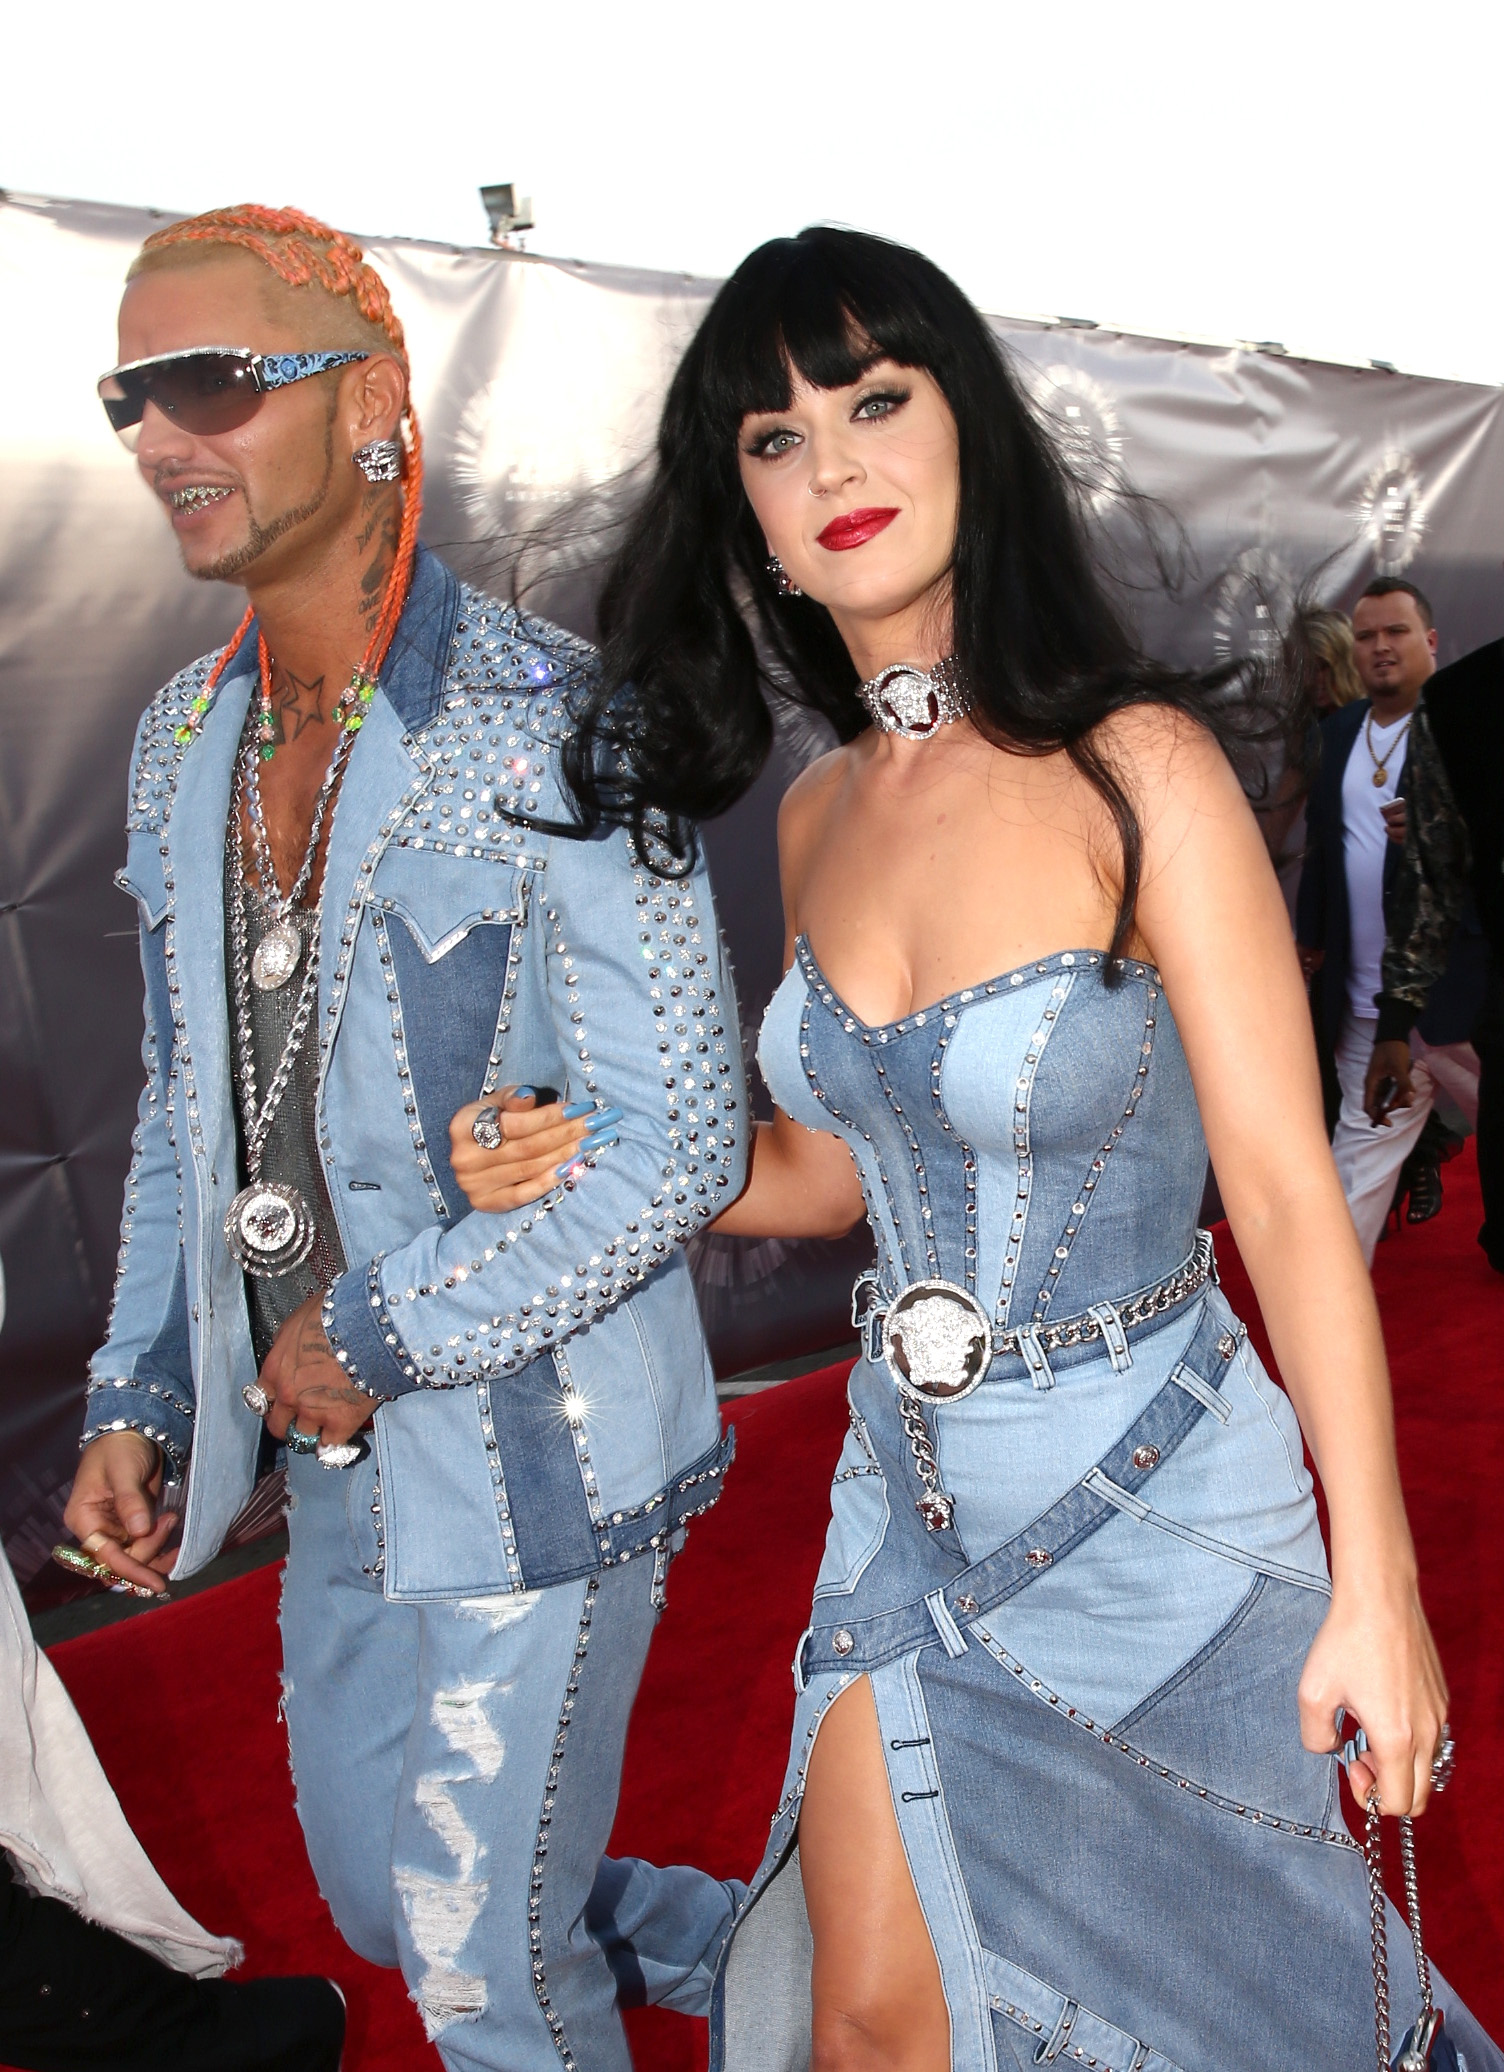 Are Katy Perry and Riff Raff dating - video dailymotion